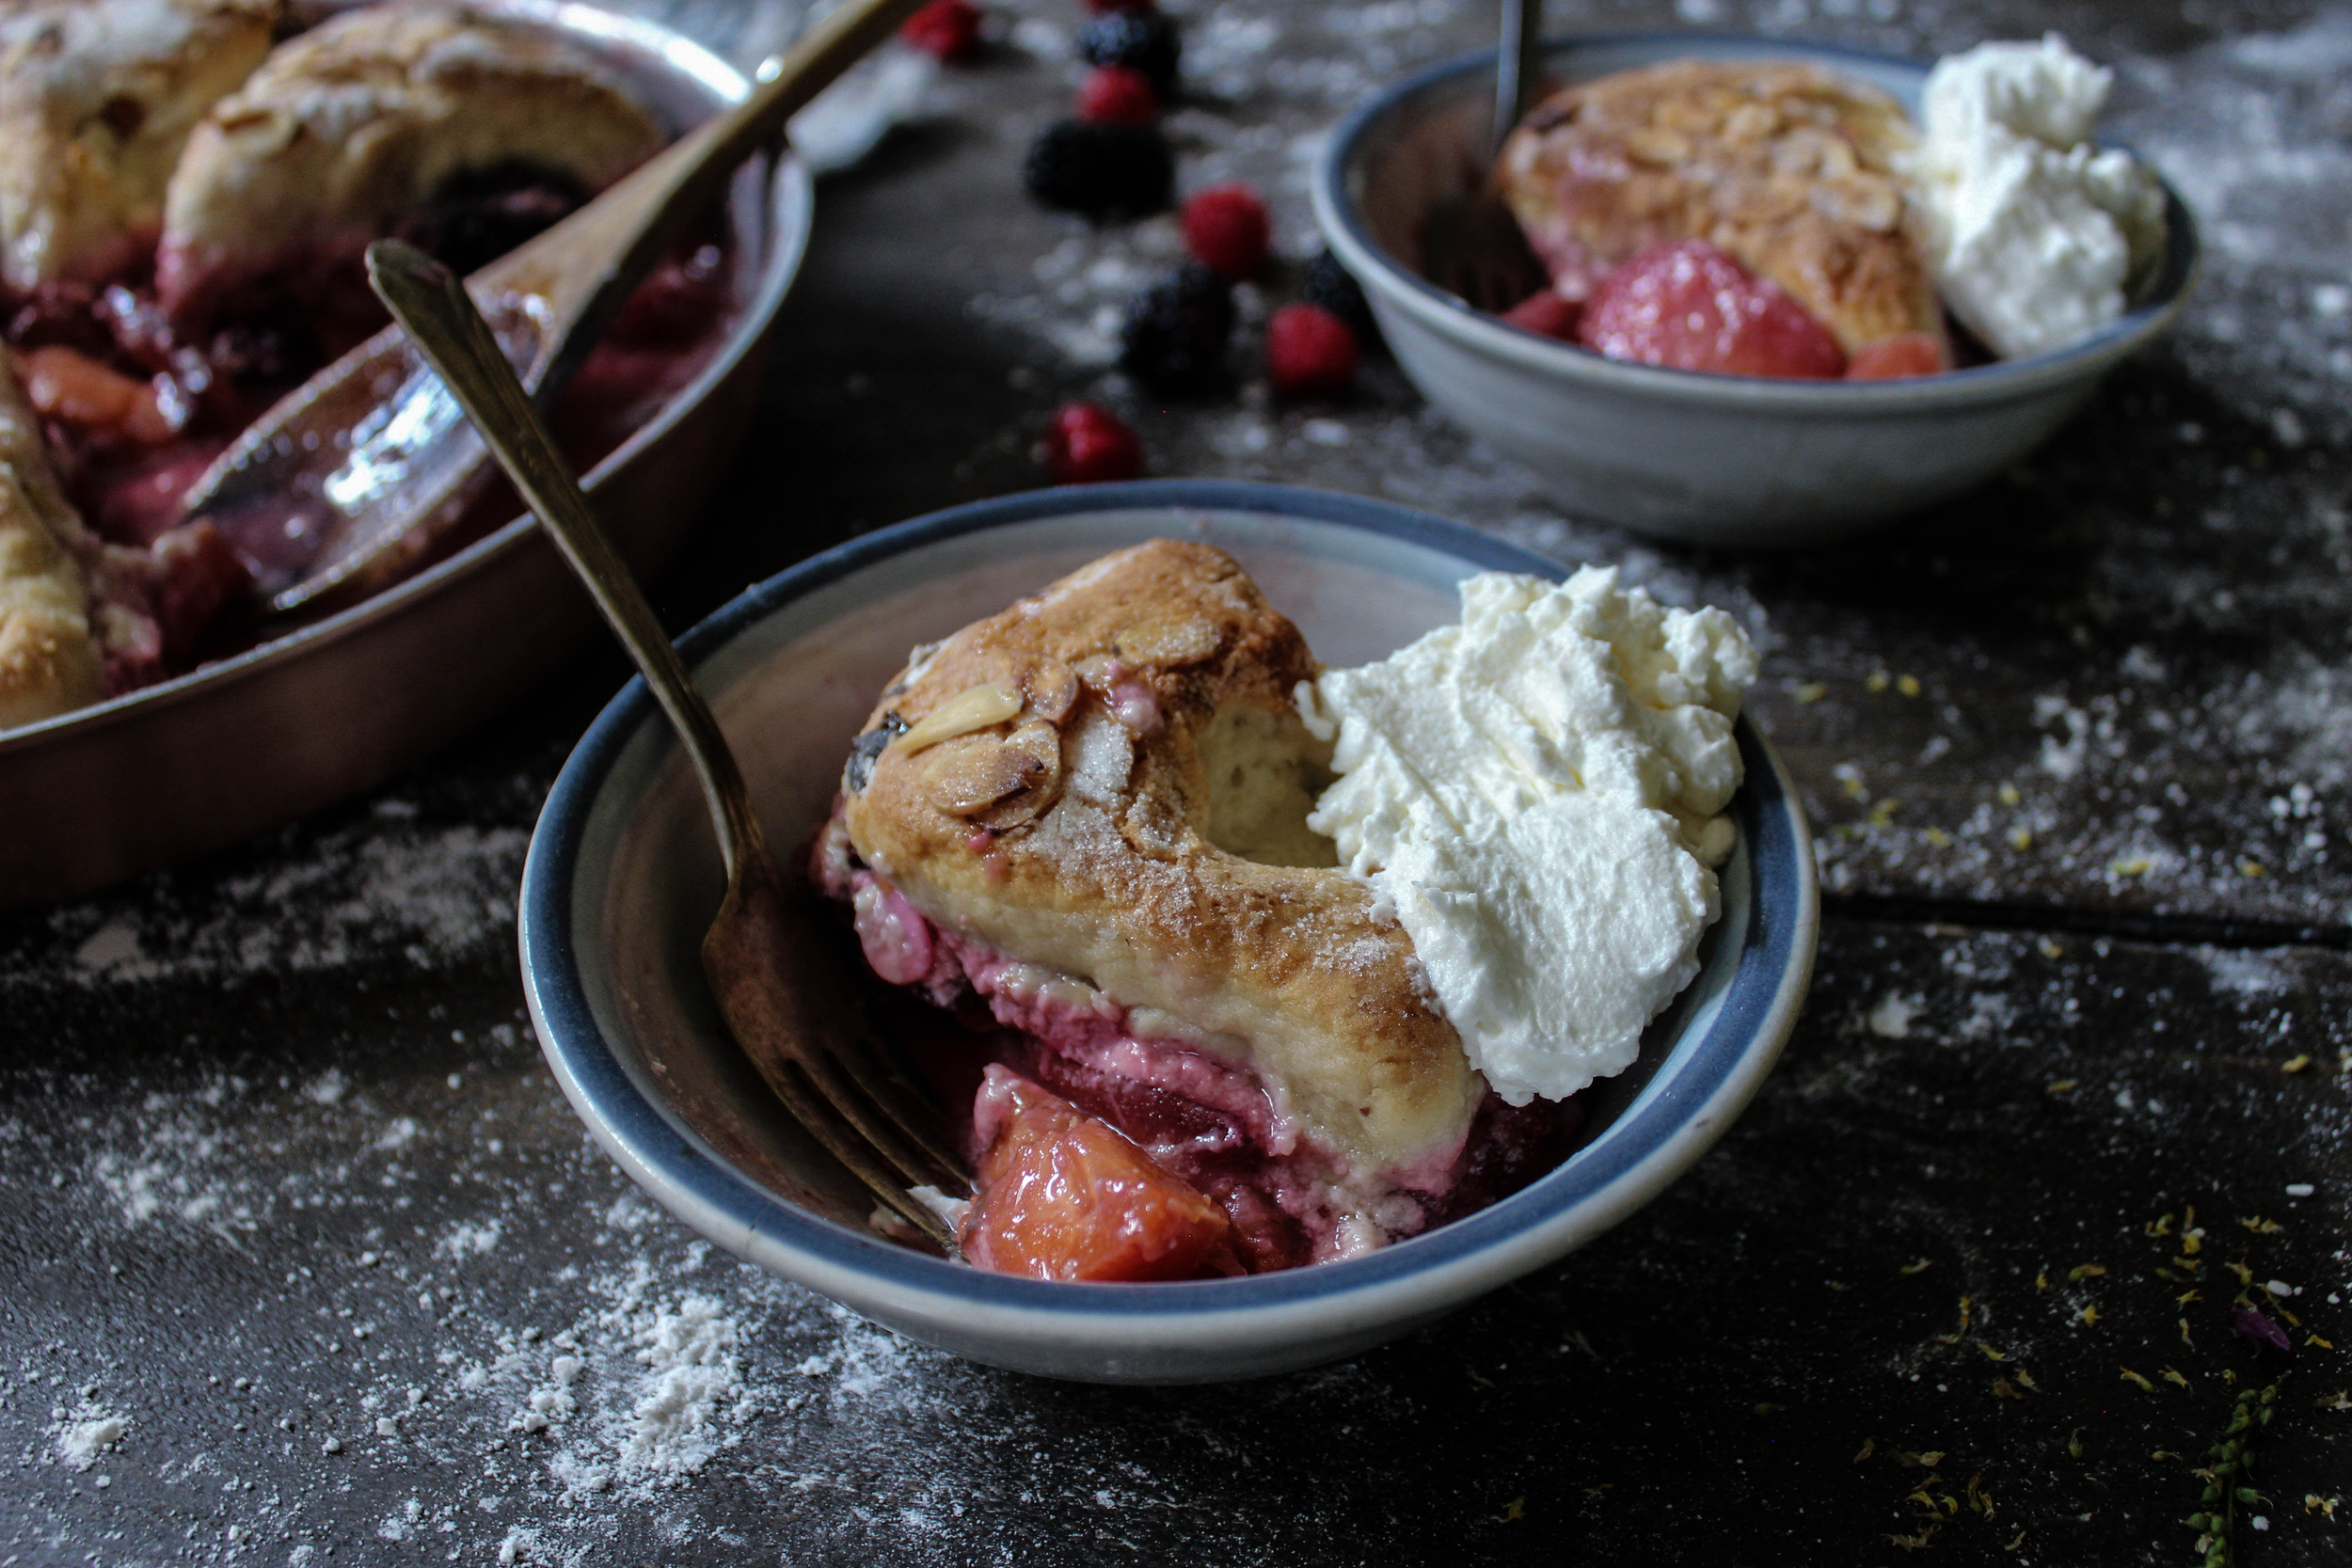 Summer Fruit Stone Cobbler, in partnership with Falk